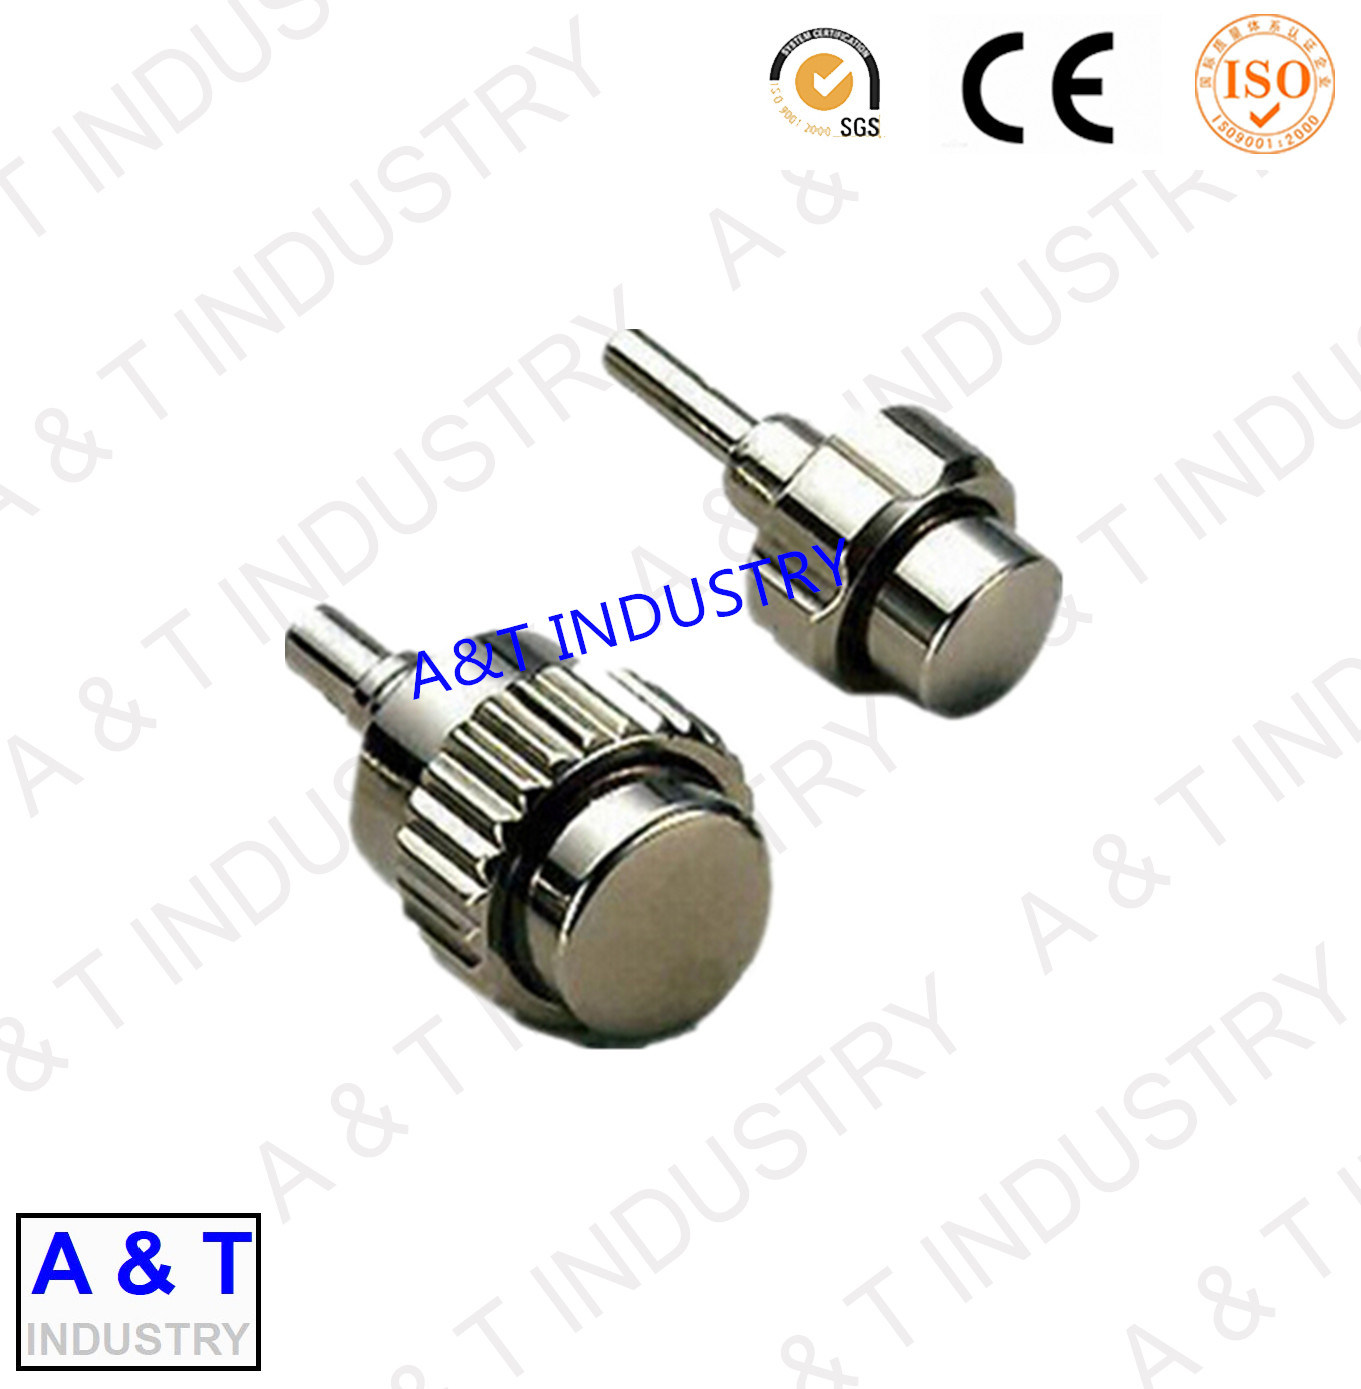 Precision OEM CNC Milling Part Machinery Part with High Quality